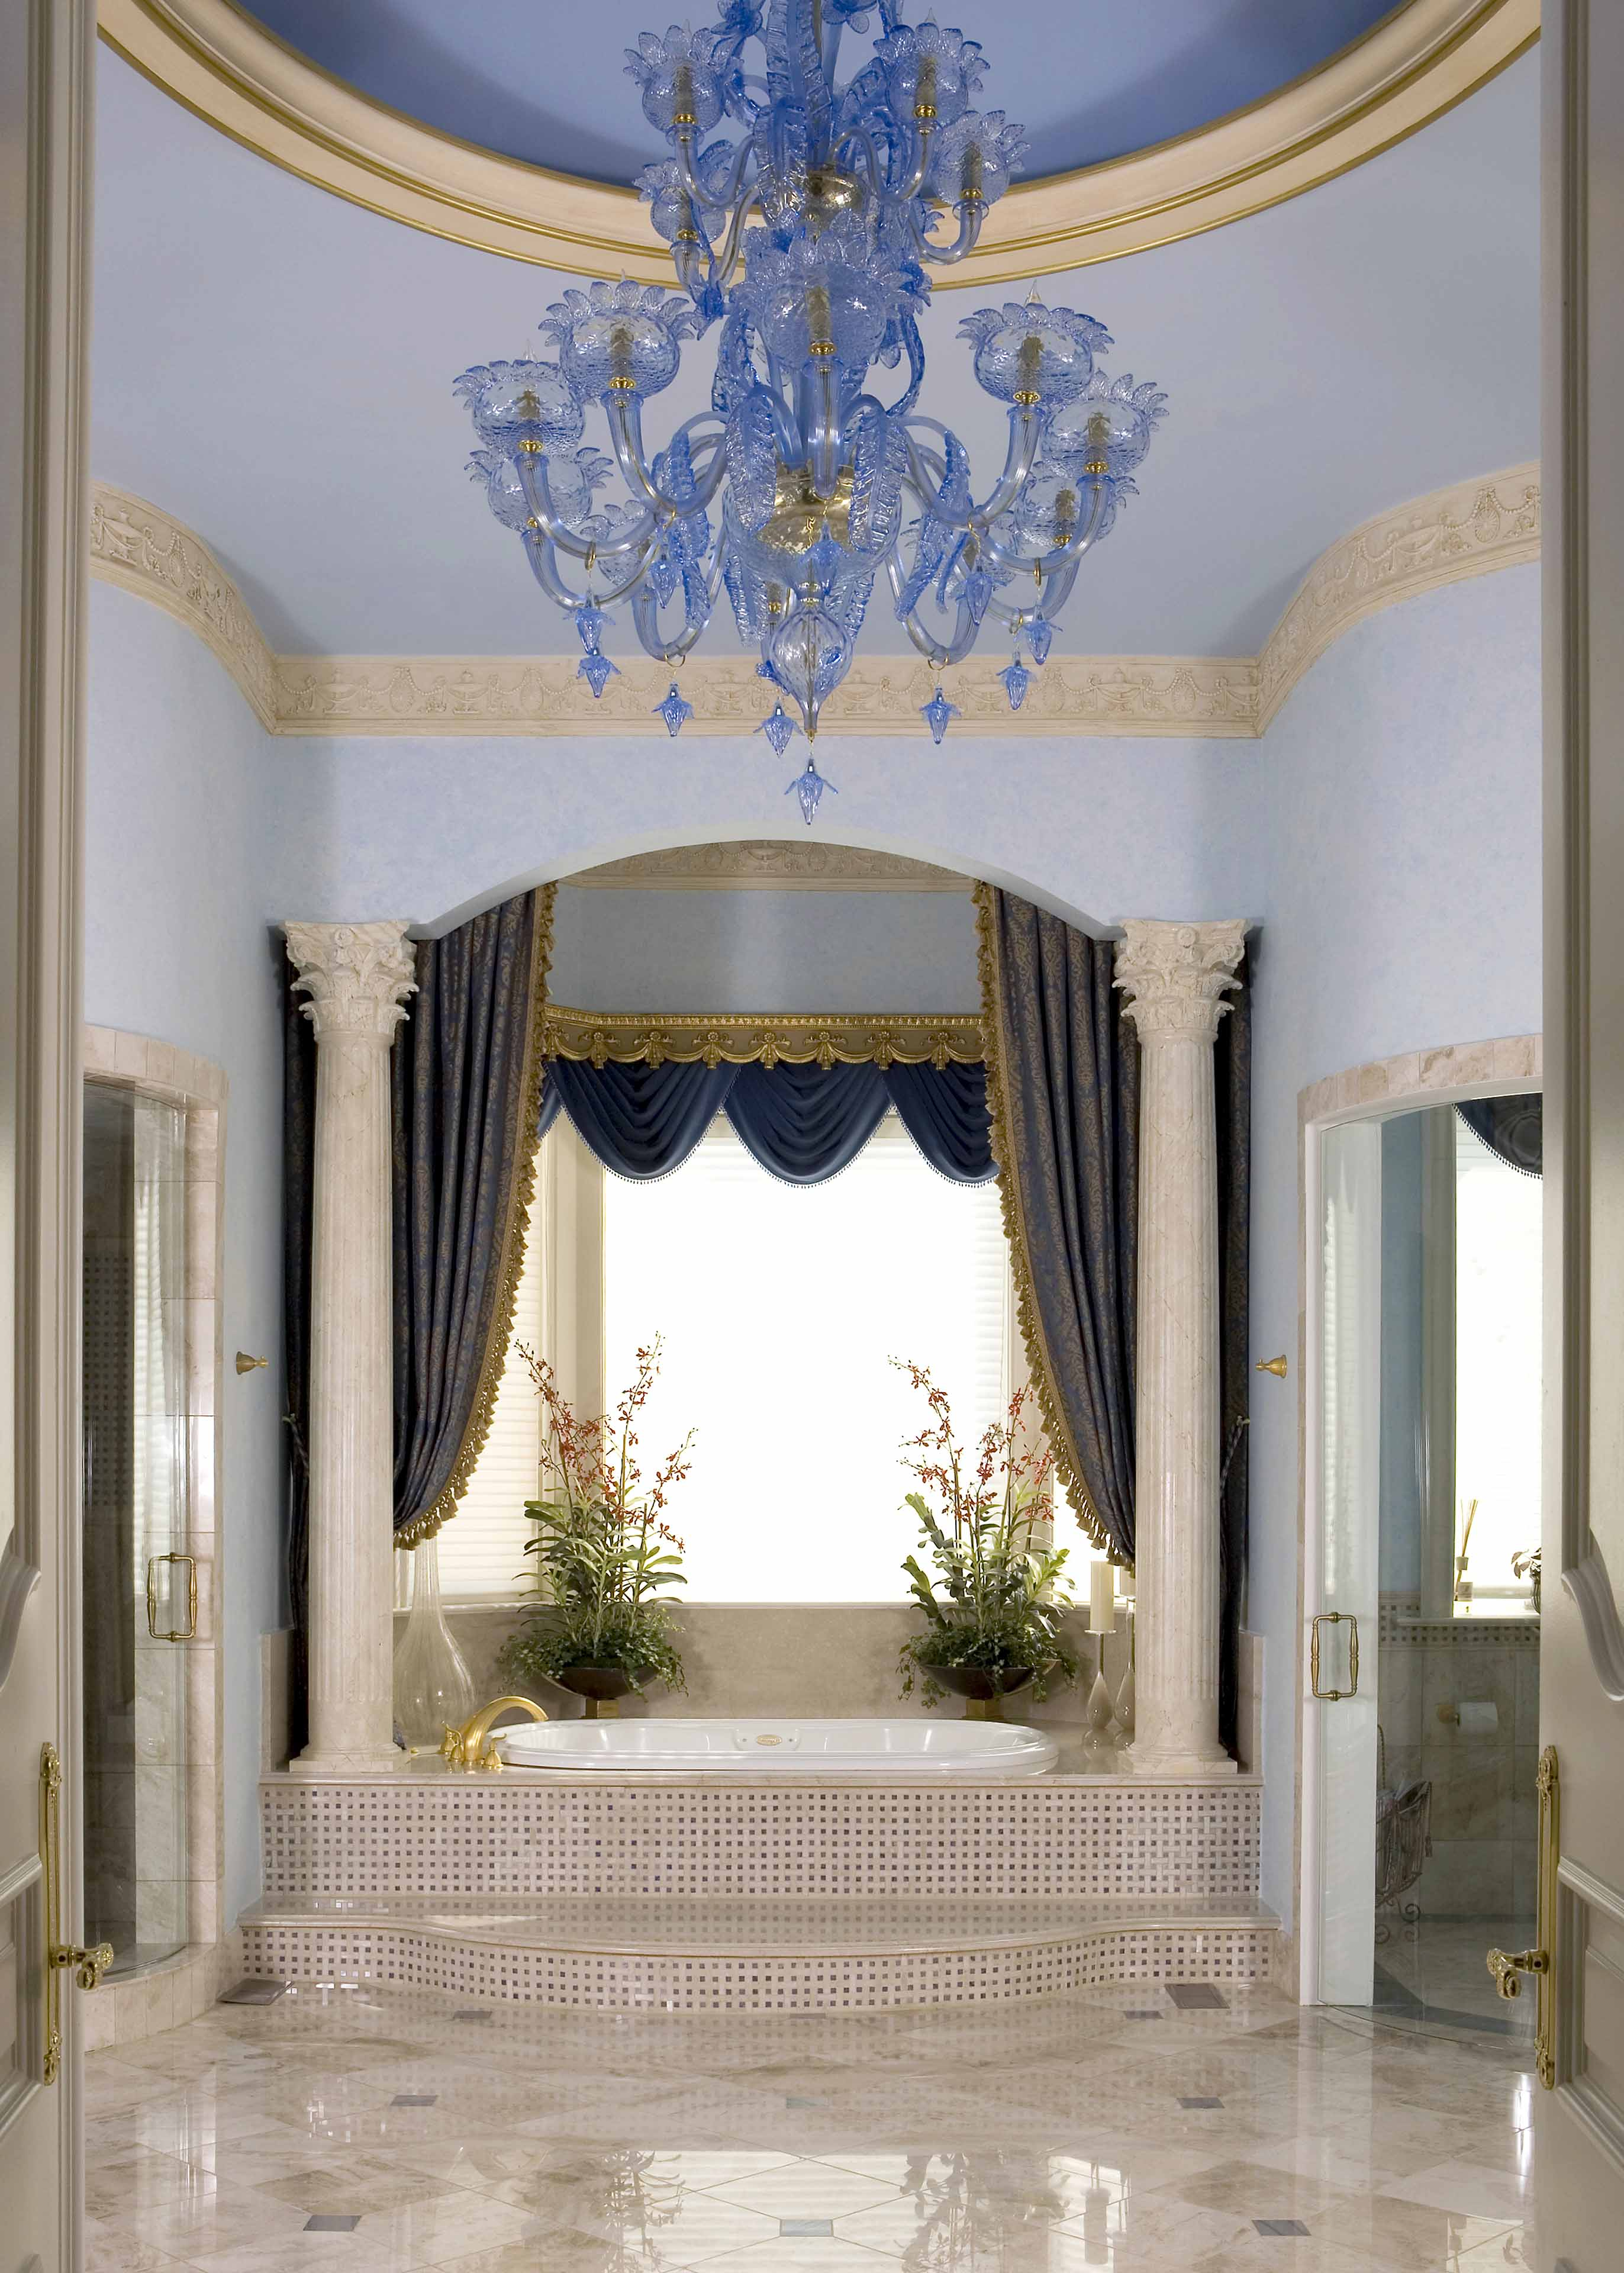 Master bathroom spa with blue ceiling and walls and crystal blue chandelier